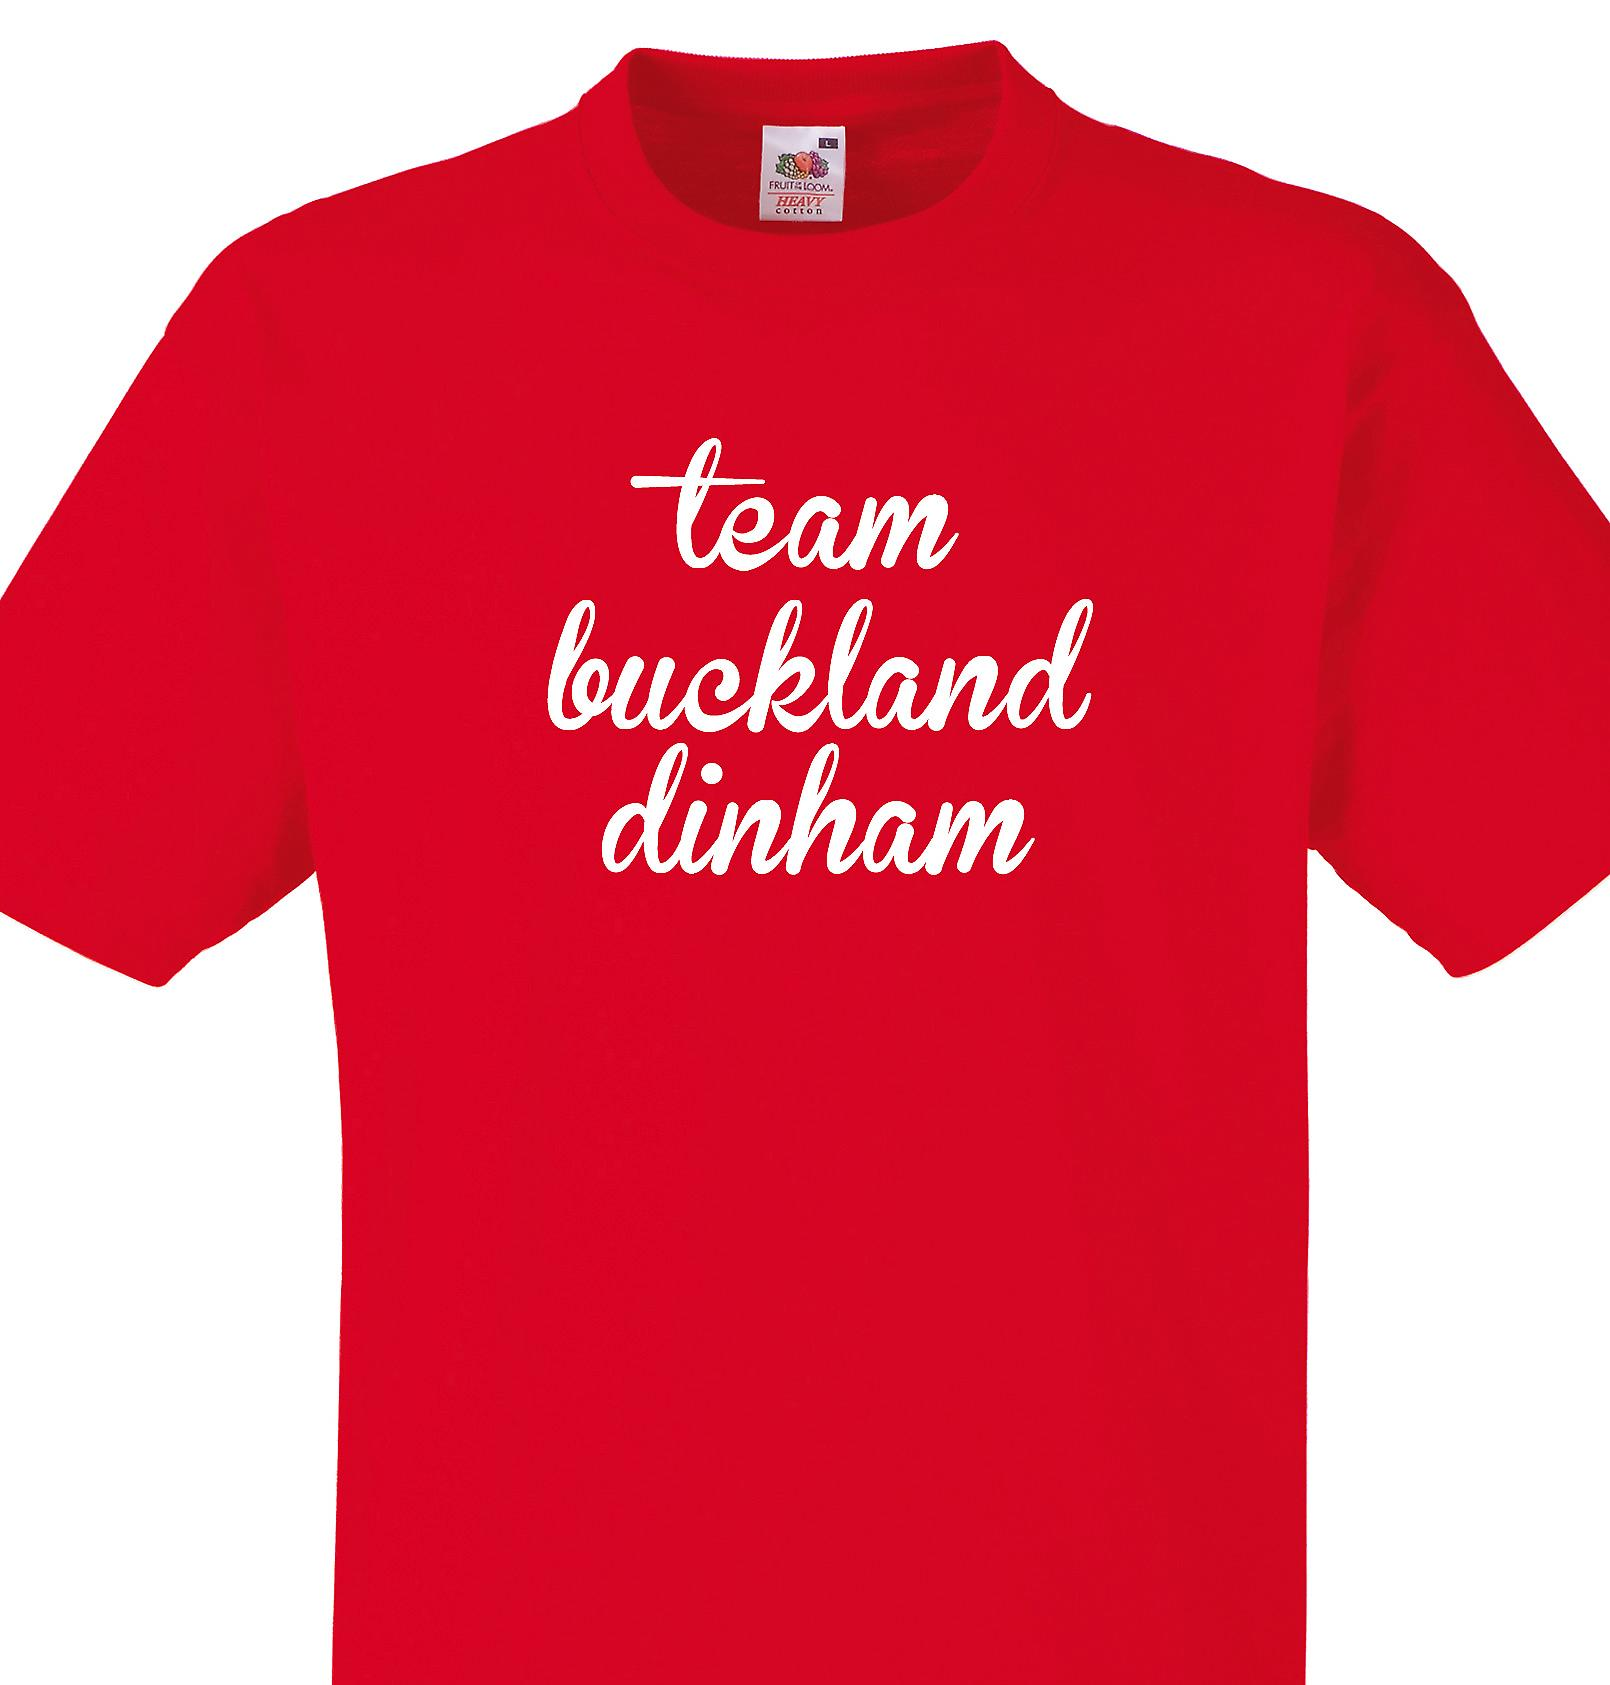 Team Buckland dinham Red T shirt